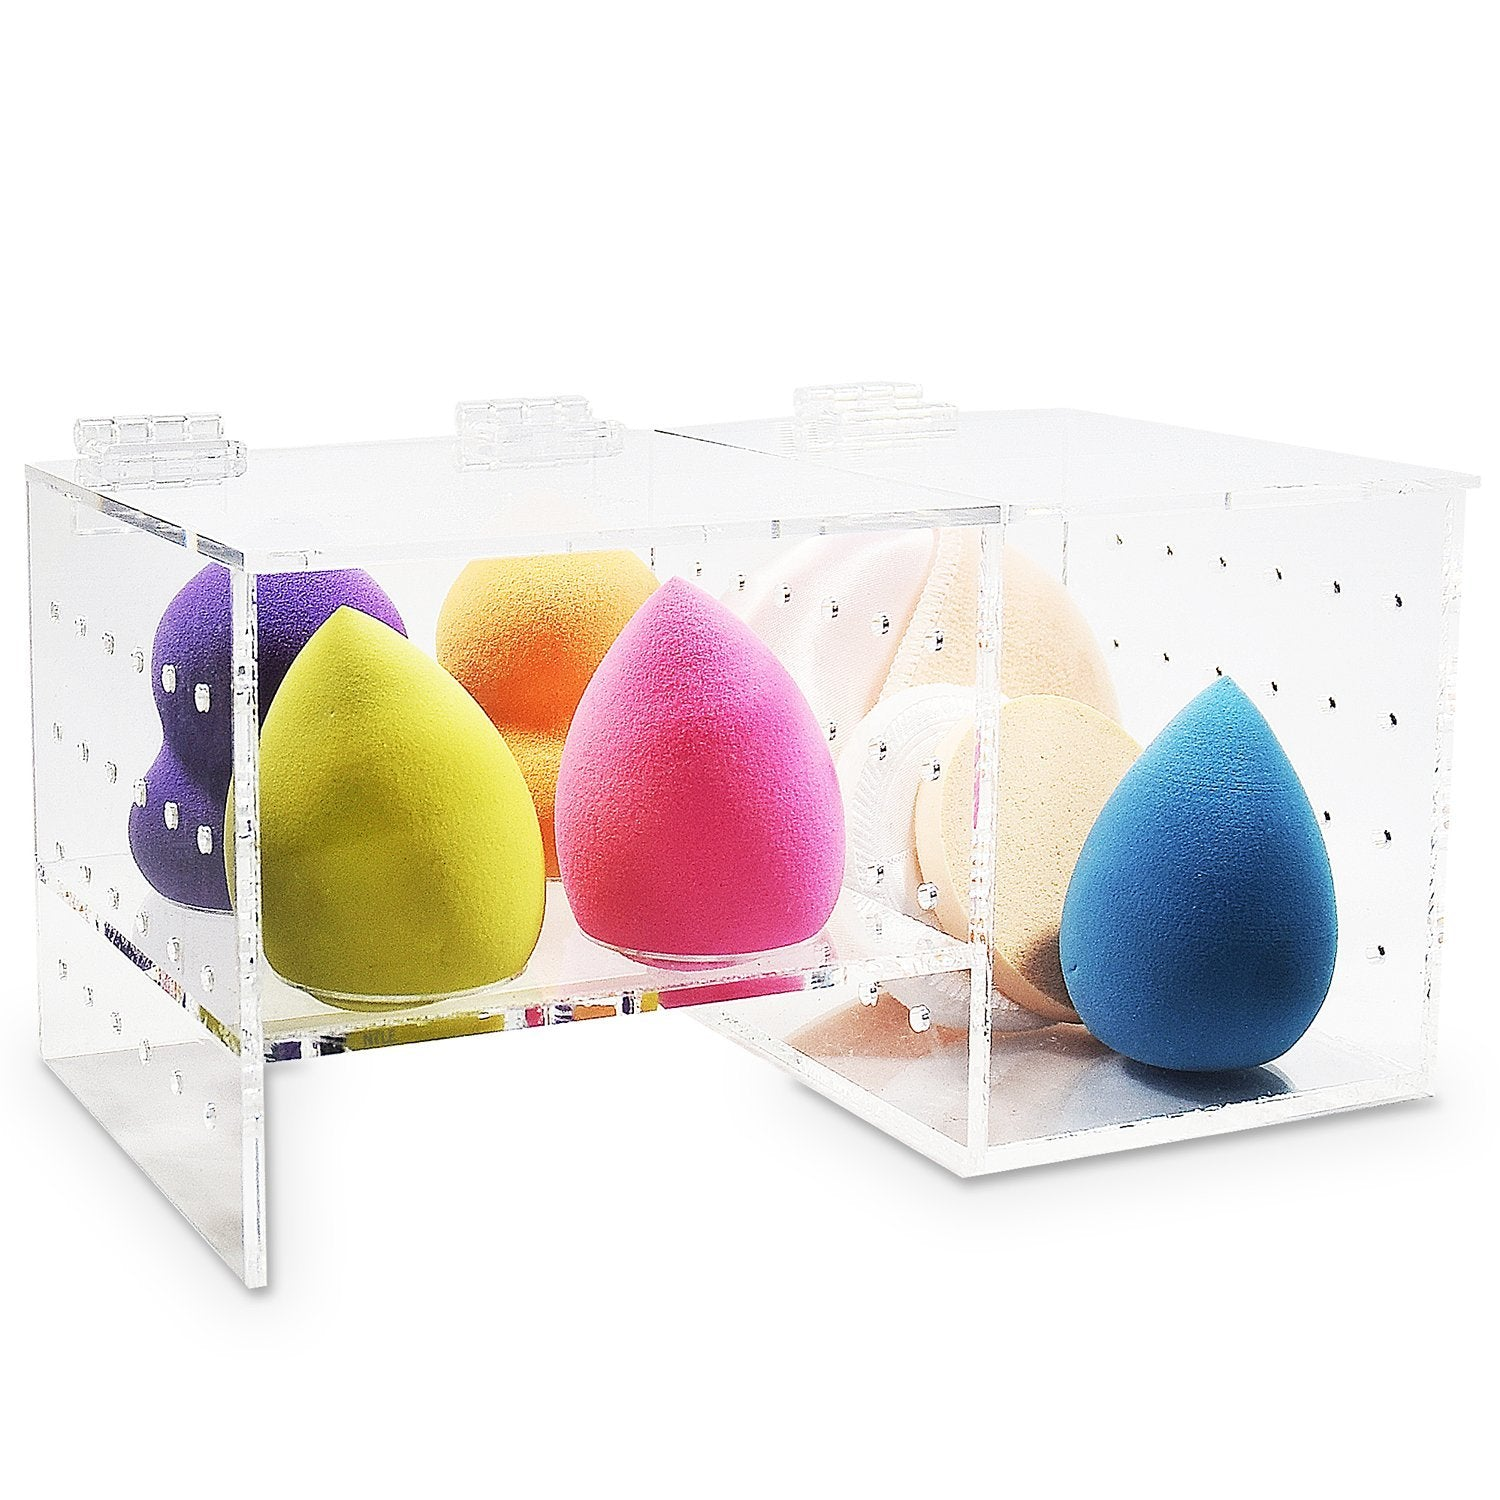 #COM6175 Acrylic Beauty Makeup Sponge Blender Holder